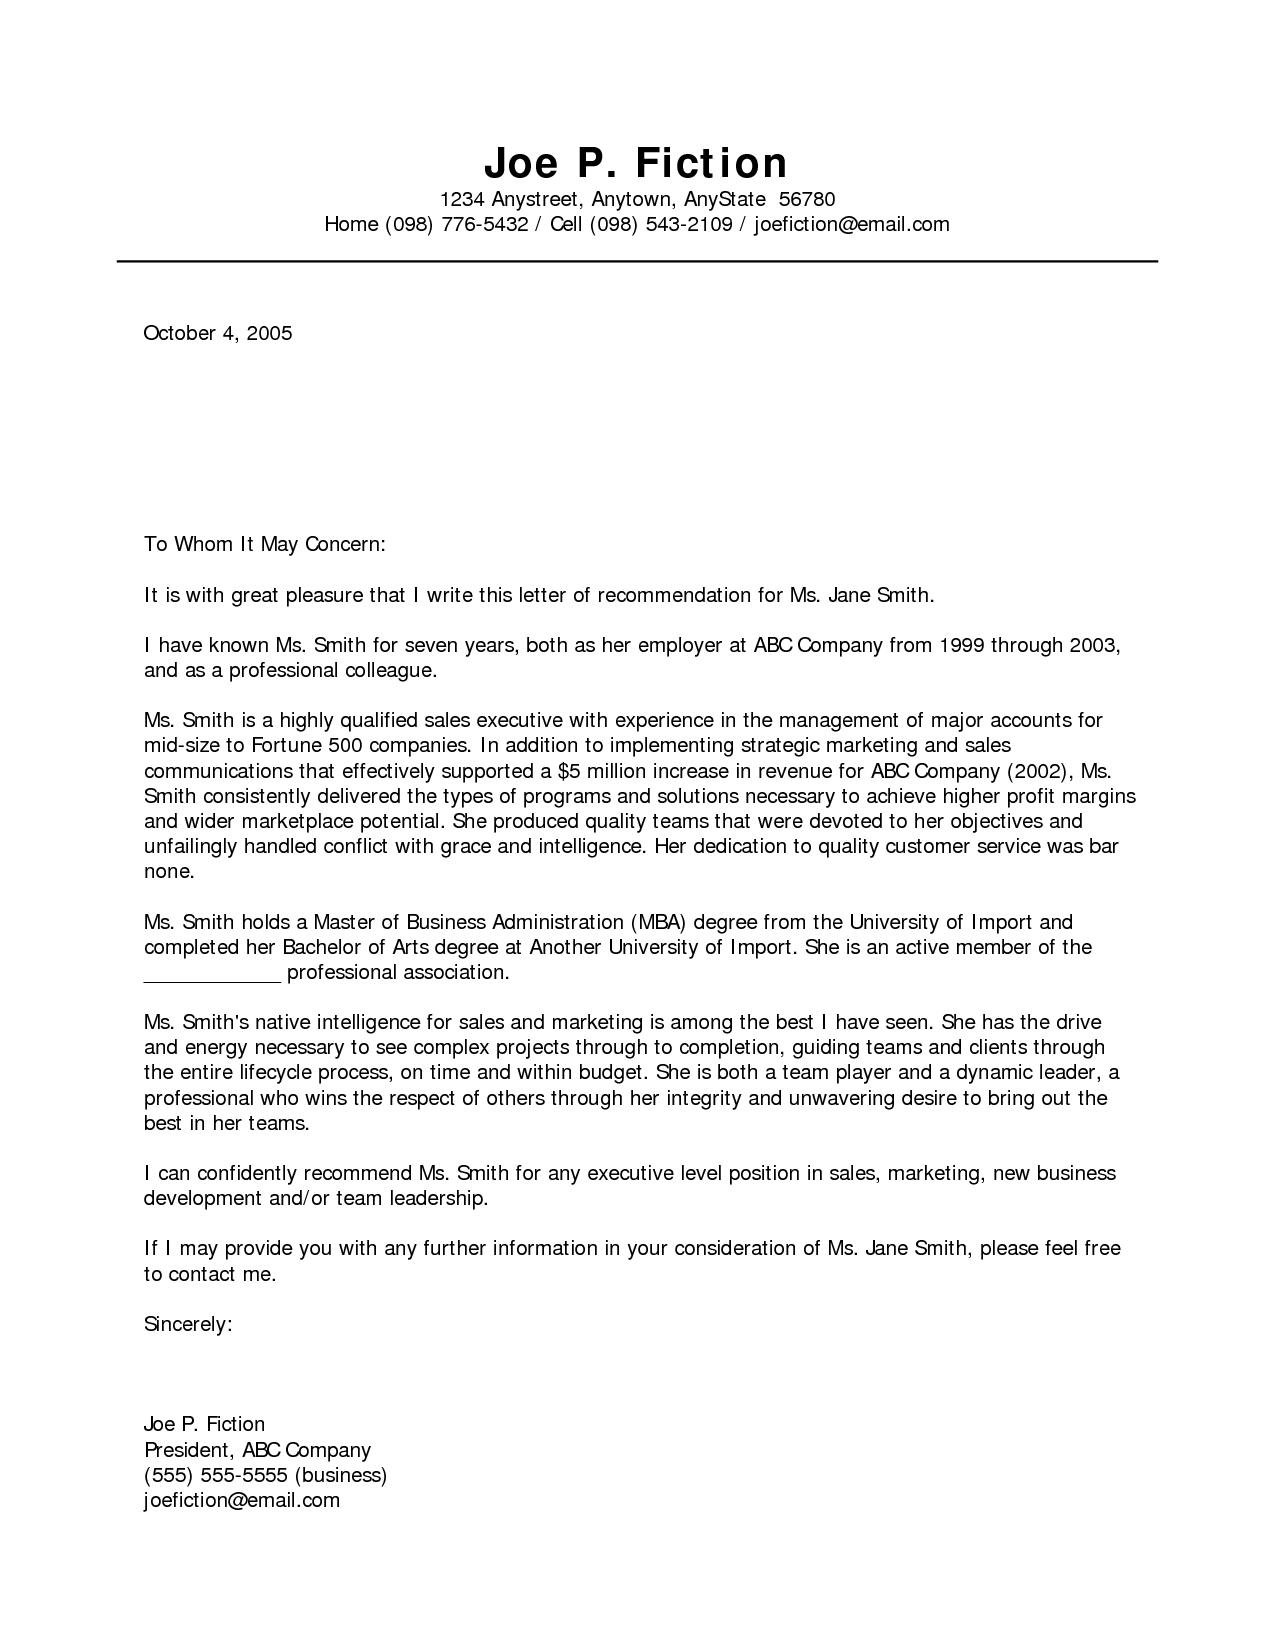 sample letter of recommendation template free example-business re mendation letter template 10-s